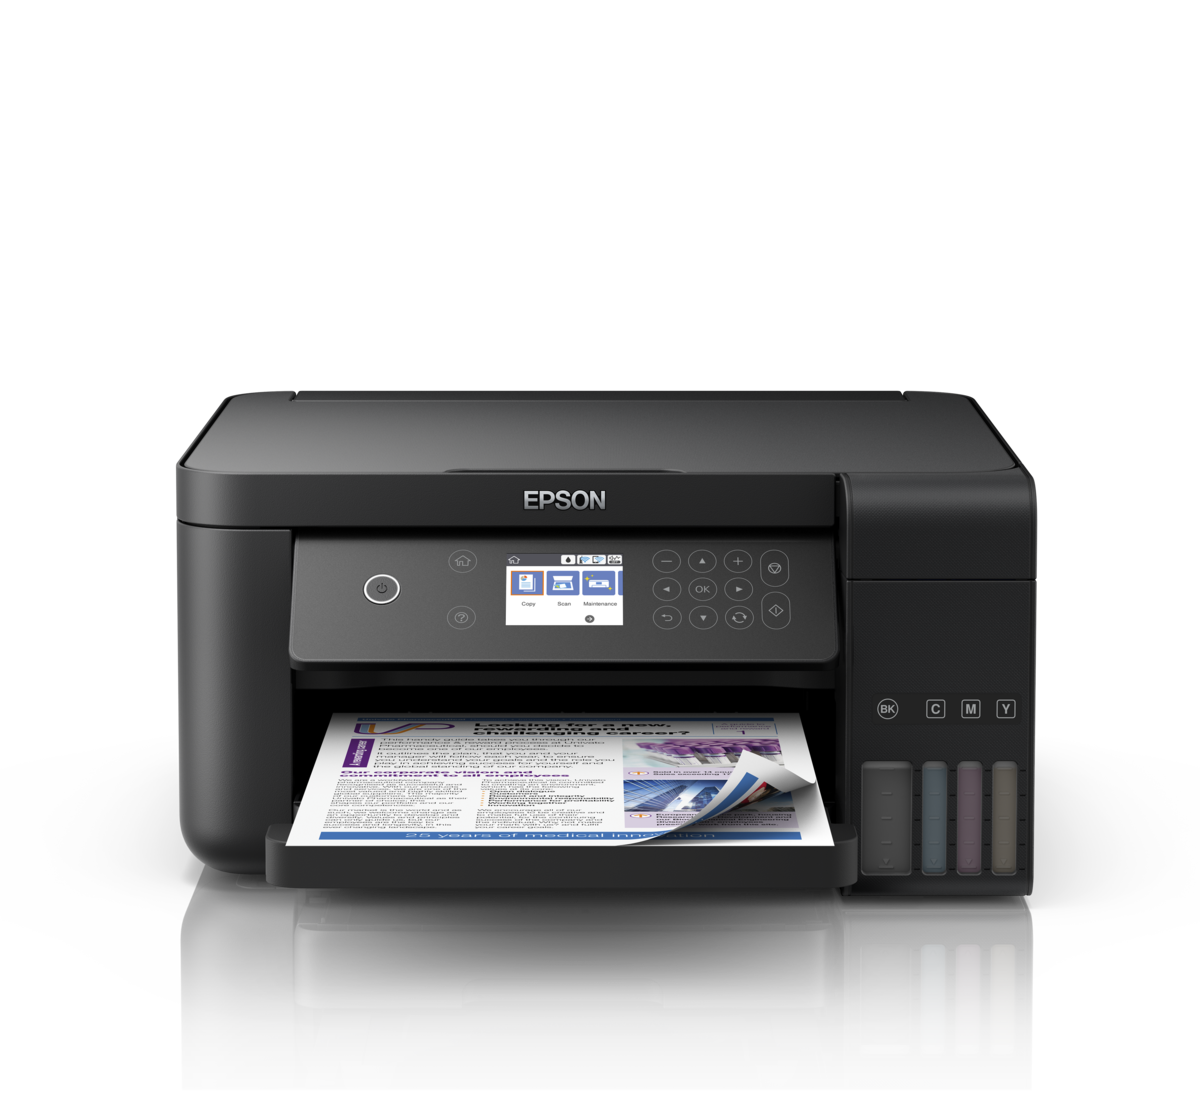 Epson L6160 Wi Fi Duplex All In One Ink Tank Printer Ink